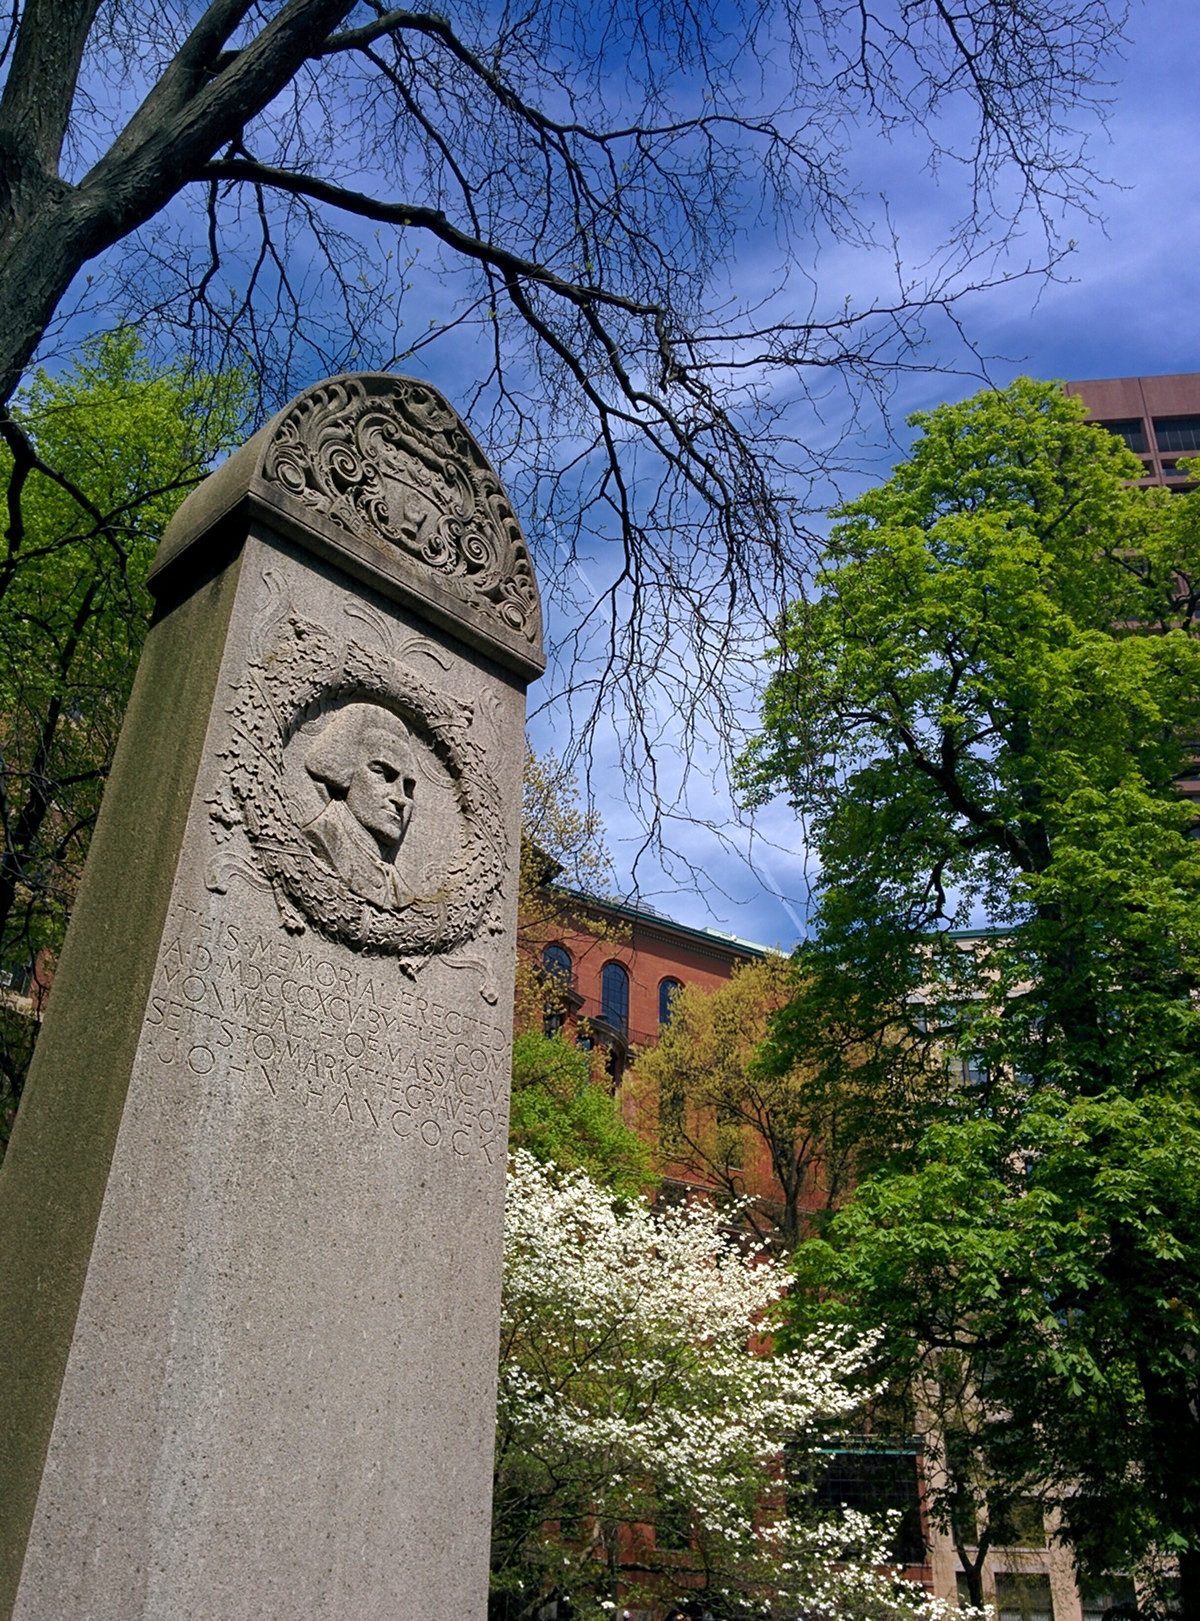 John Hancock's memorial at the Granary Burying Ground